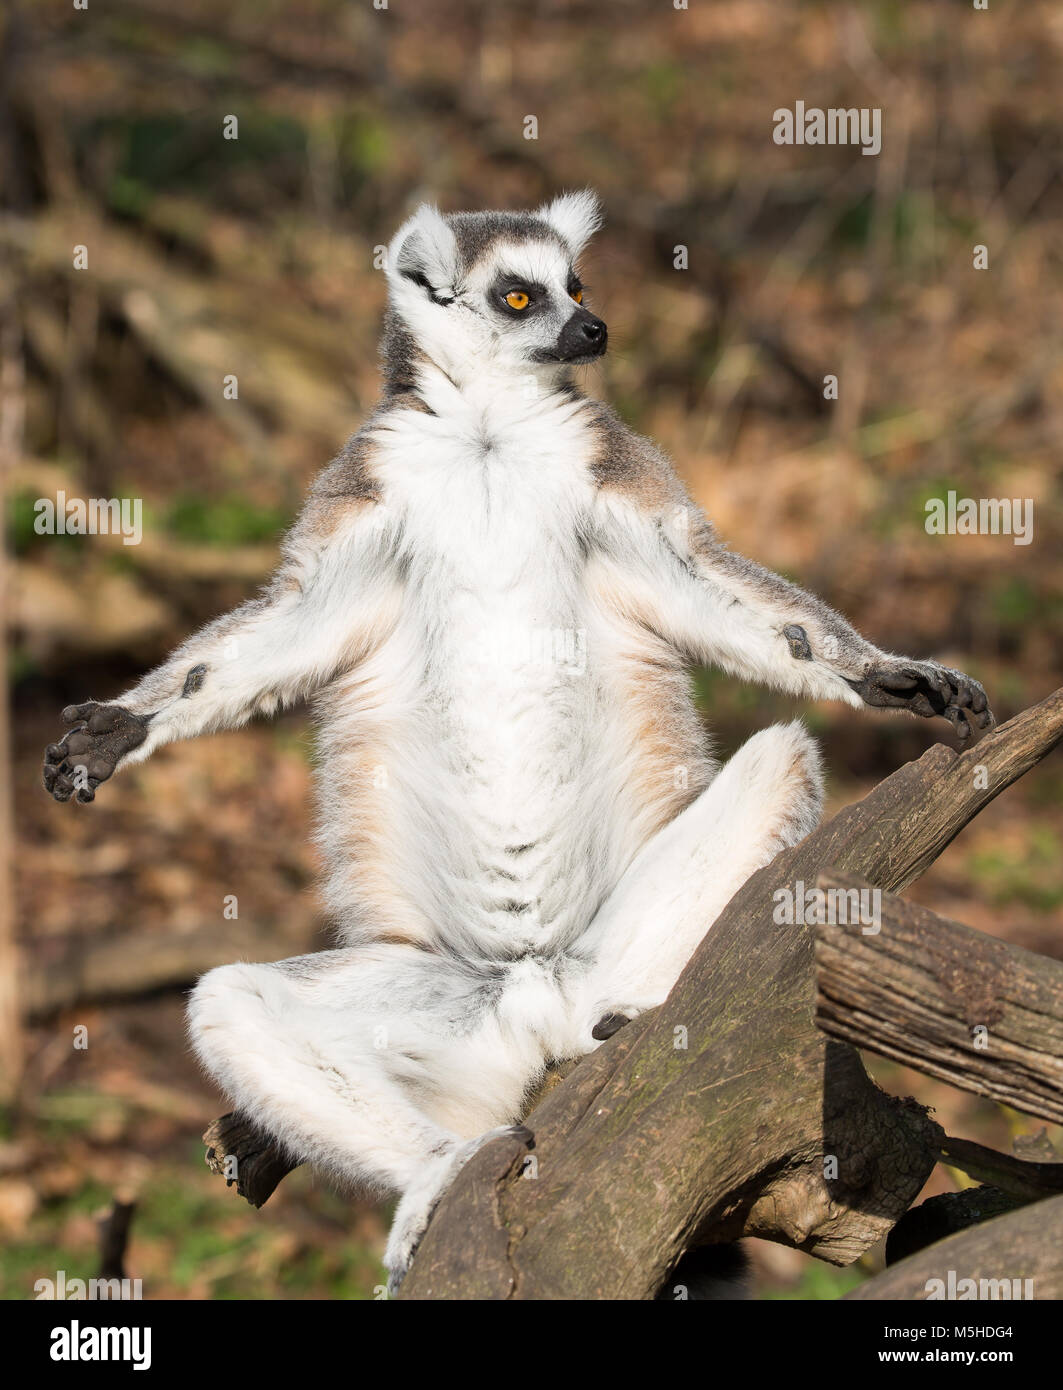 Close up single ring-tailed lemur (Lemur catta) sat on tree branch outdoors, arms & legs held out to the sides - Stock Image